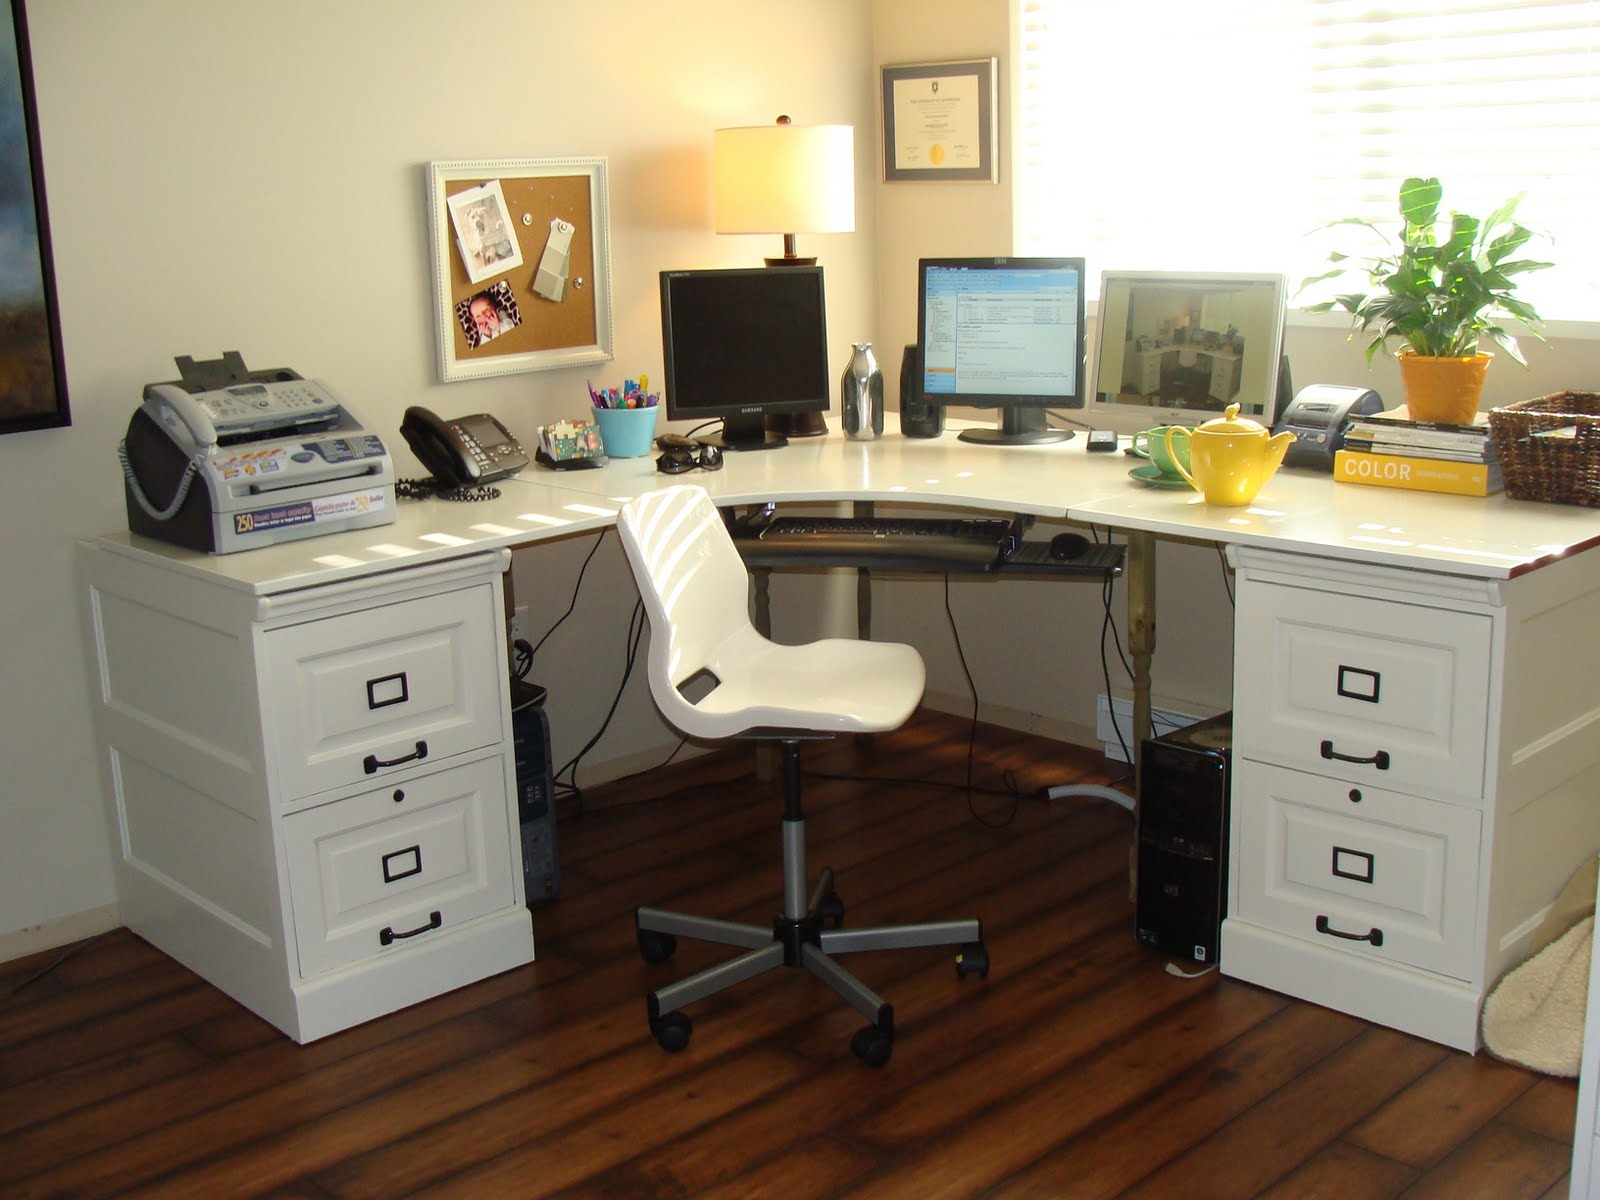 A Pair Of White Wood Cabinets In Desk Office Minimalist Chair Telephone Set Fax Machine